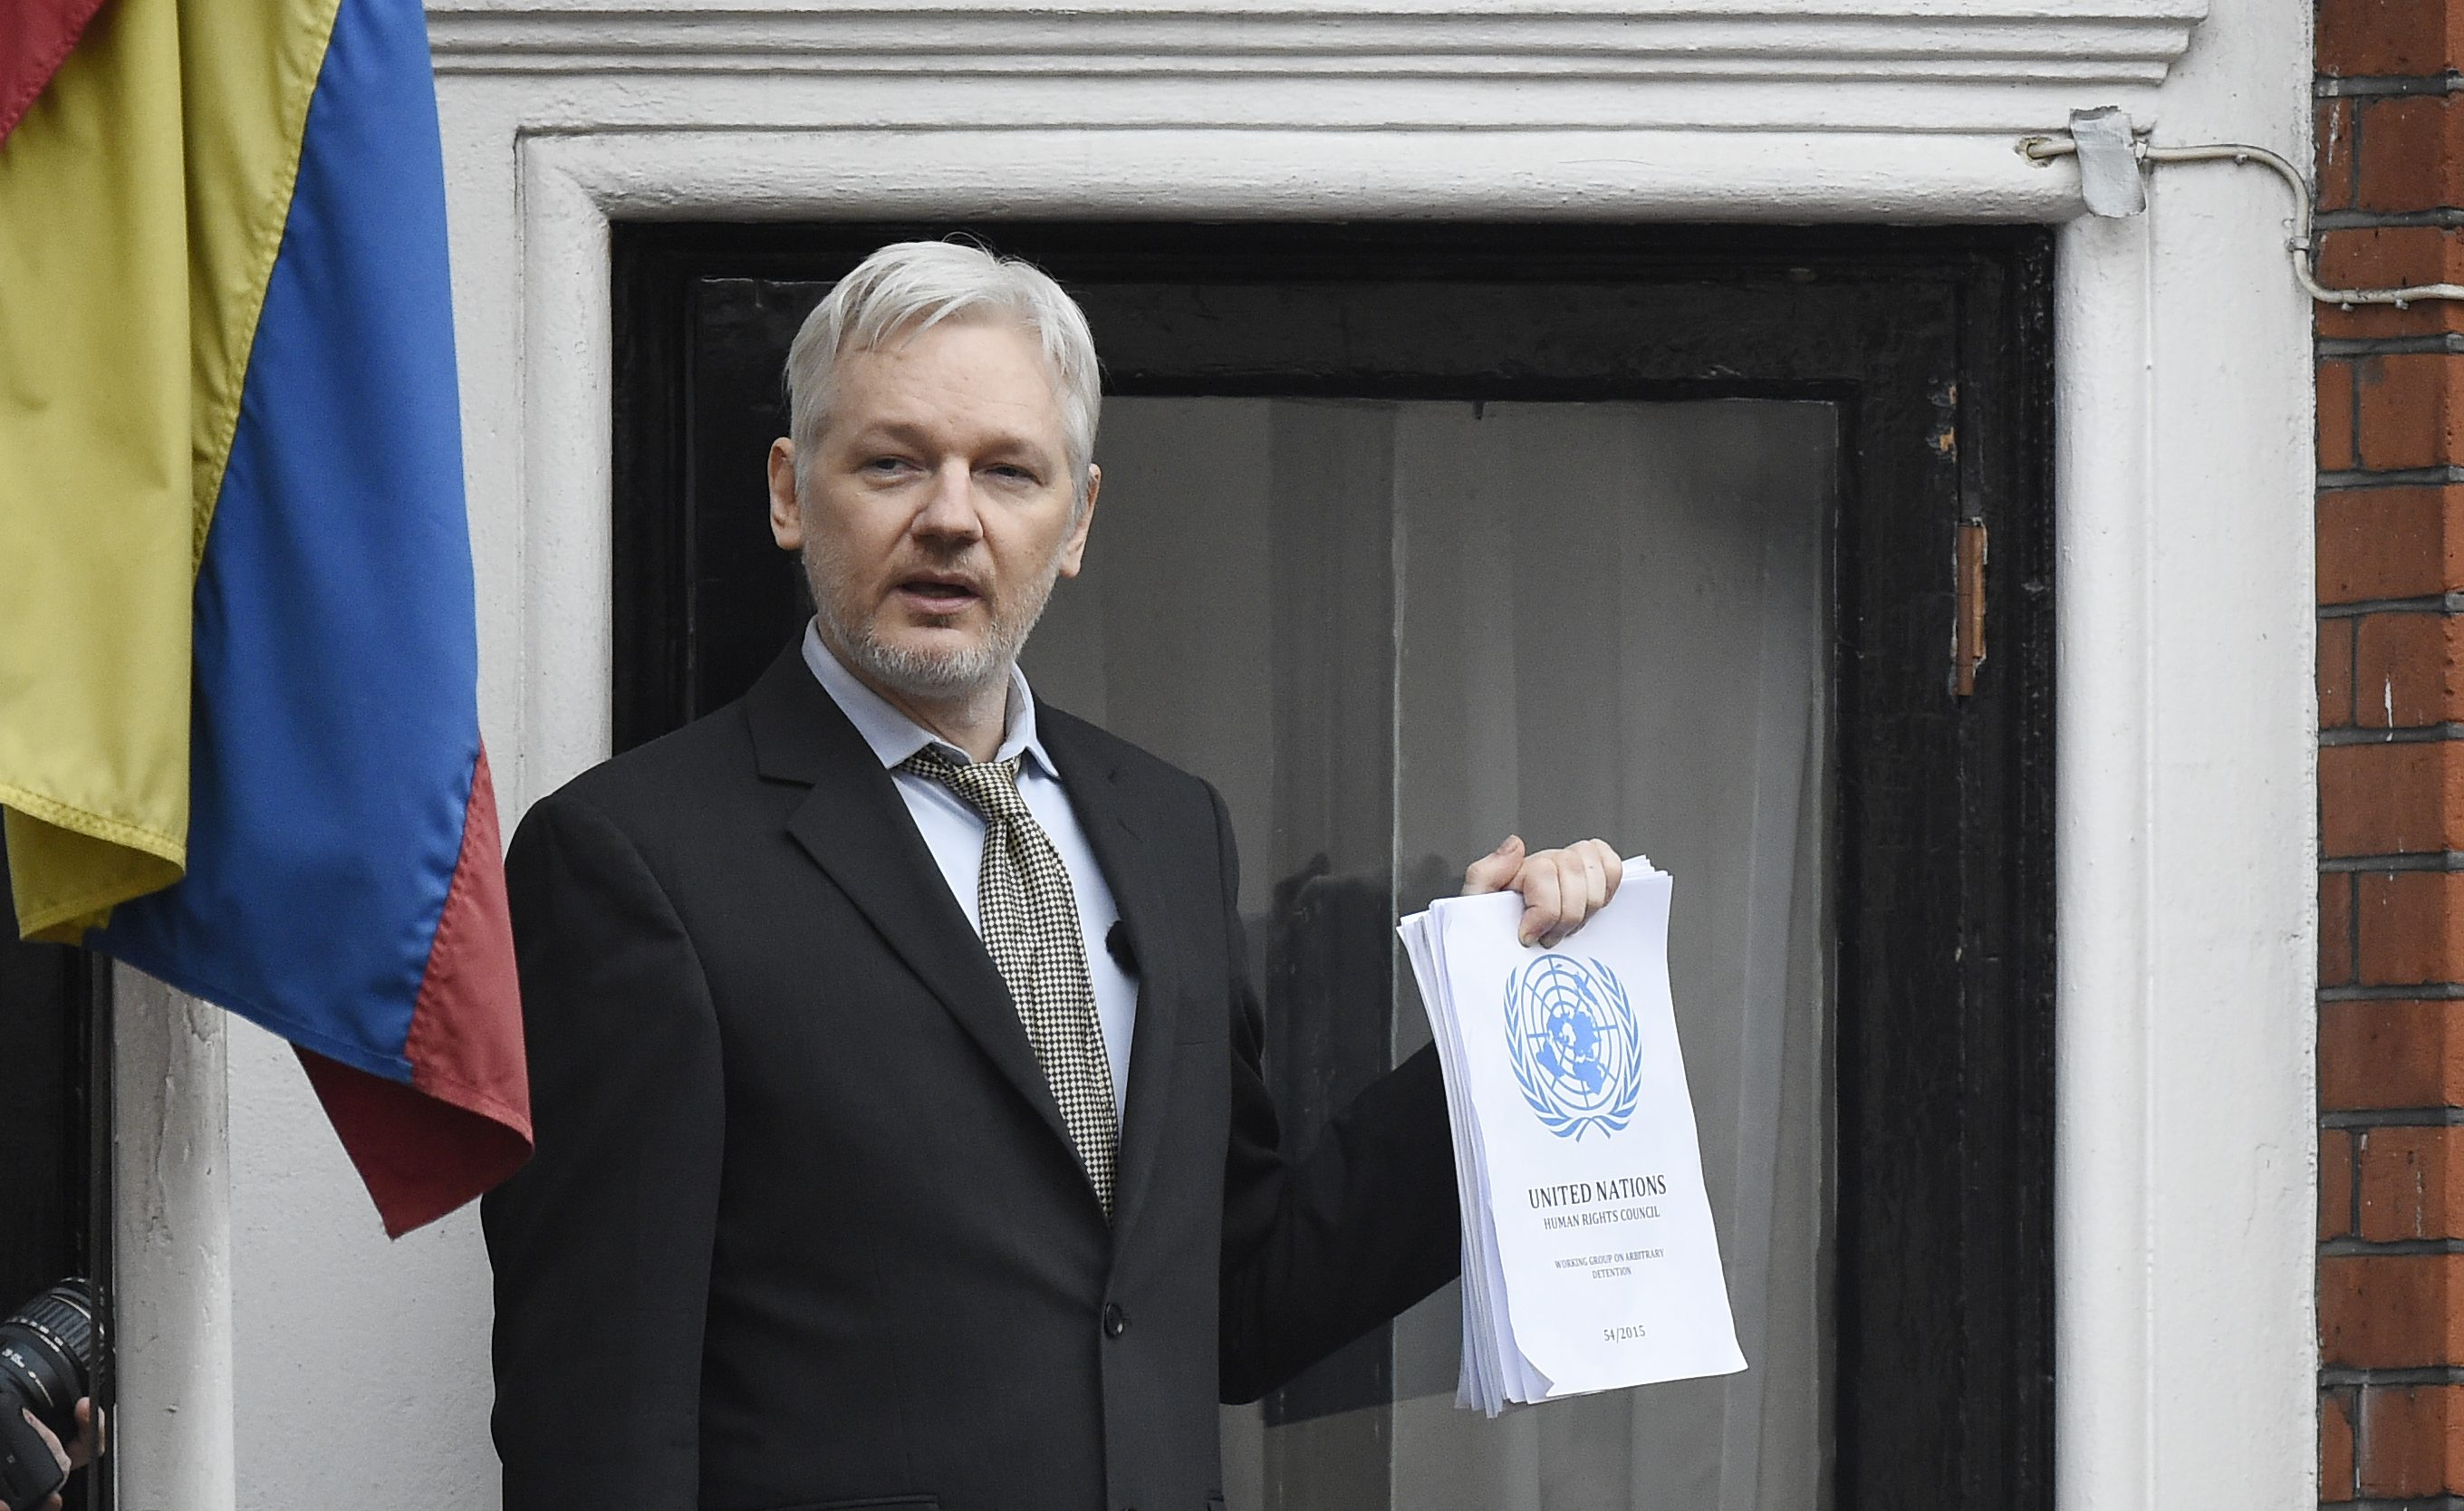 05 Feb 2016, London, England, UK --- epa05144885 WikiLeaks founder Julian Assange (C) speaks to the media from a balcony of the Ecuadorian Embassy in London, Britain, 05 February 2016. Assange hailed a UN panel's finding that he is under arbitrary detention on 05 February, urging Britain and Sweden to 'implement the decision.' Britain and Sweden have dismissed the ruling by the UN Working Group on Arbitrary Detention, a panel of independent legal scholars, that the Australian activist had been subject to arbitrary detention since his arrest in London in 2010 on Swedish allegations of rape and sexual harassment. Although the ruling is legally binding, the panel has no power to enforce it, and their decision was quickly dismissed by Britain and Sweden. EPA/FACUNDO ARRIZABALAGA --- Image by © FACUNDO ARRIZABALAGA/epa/Corbis